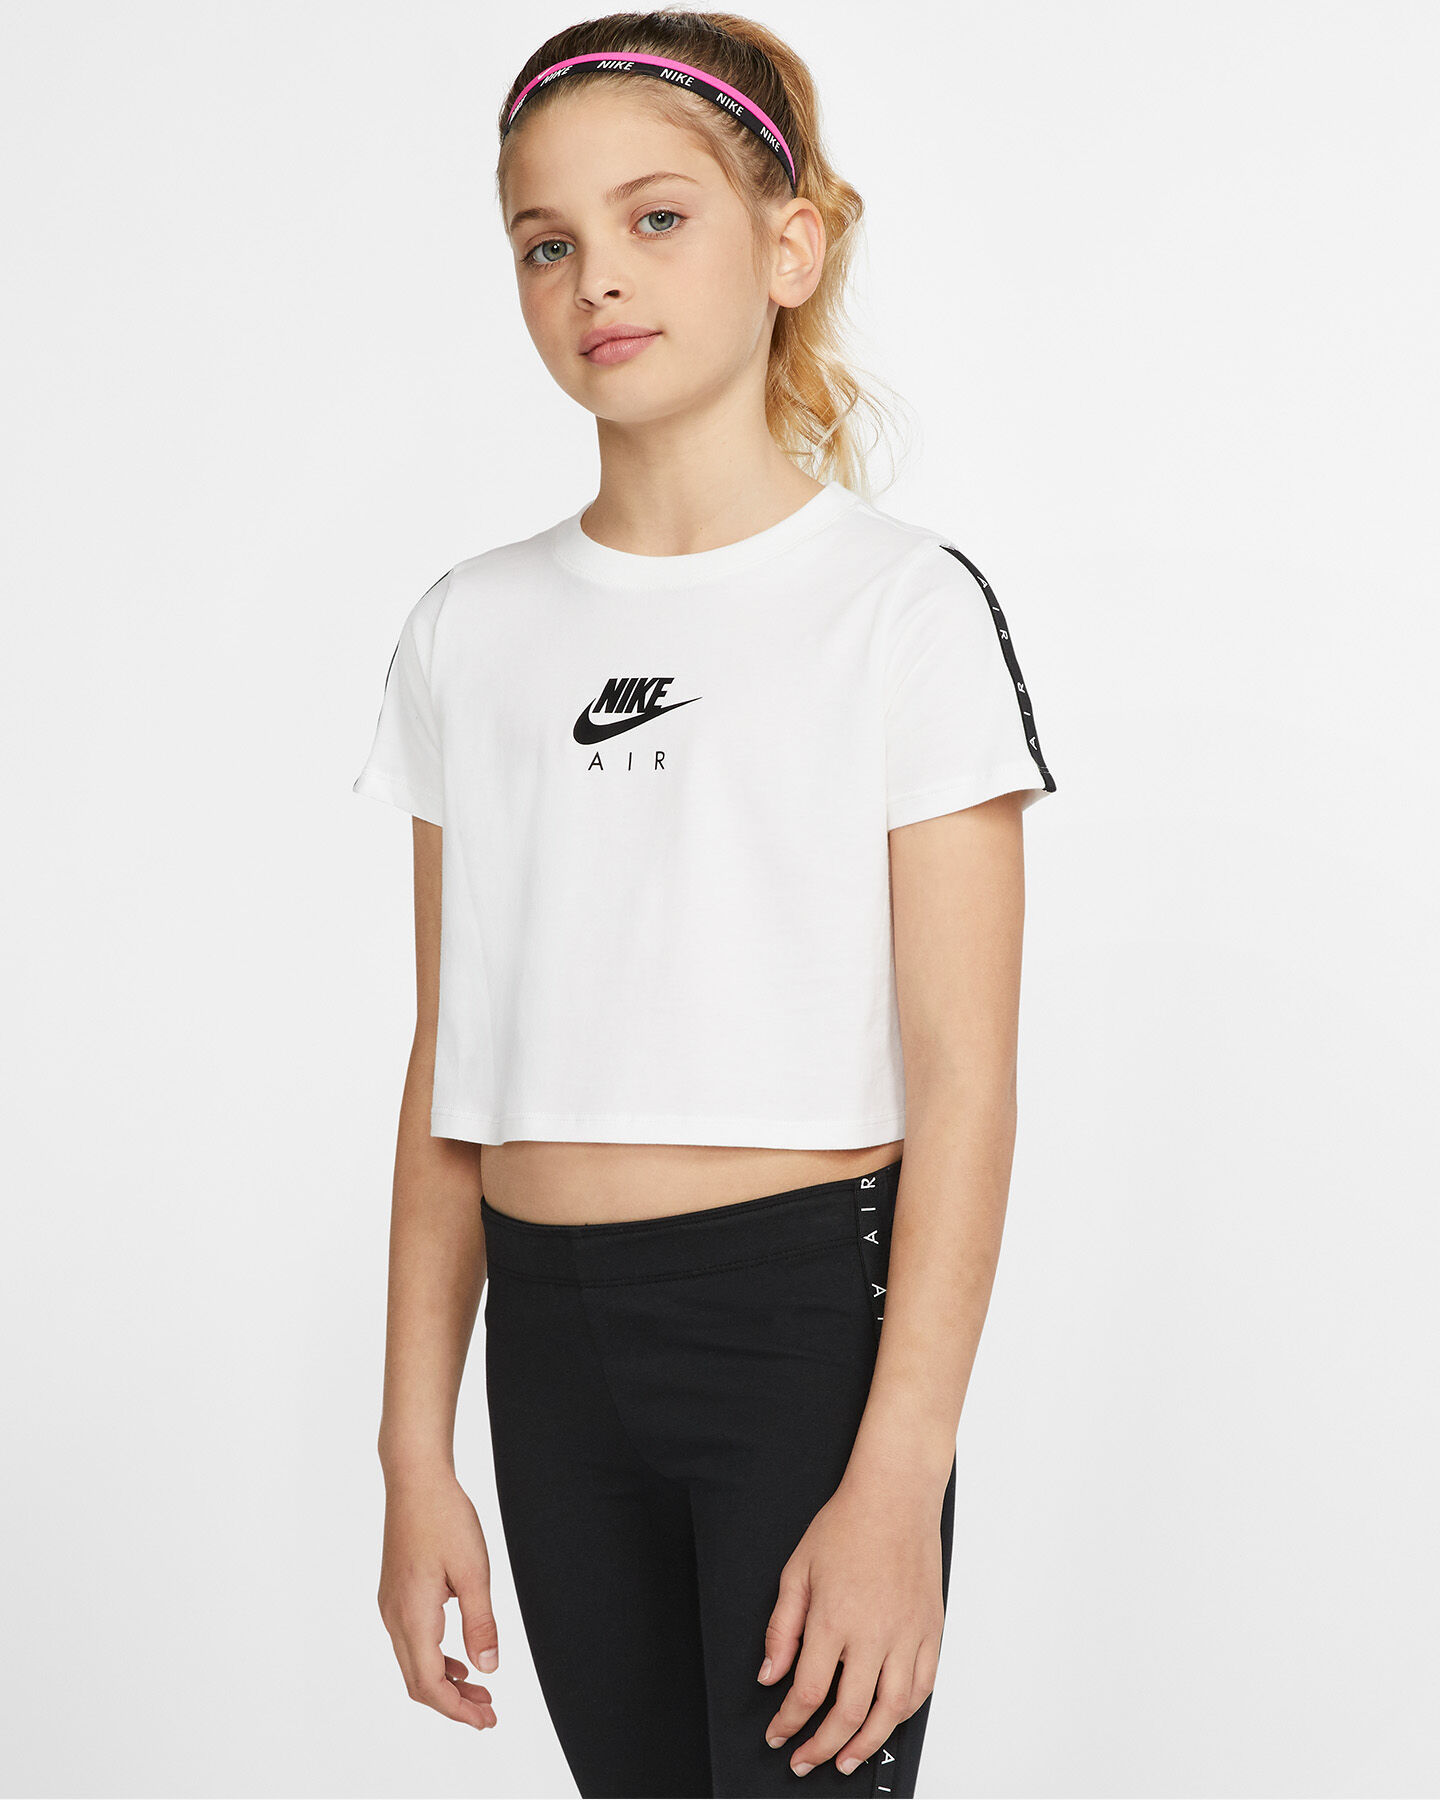 T-Shirt NIKE AIR TAPE JR S5165084 scatto 2